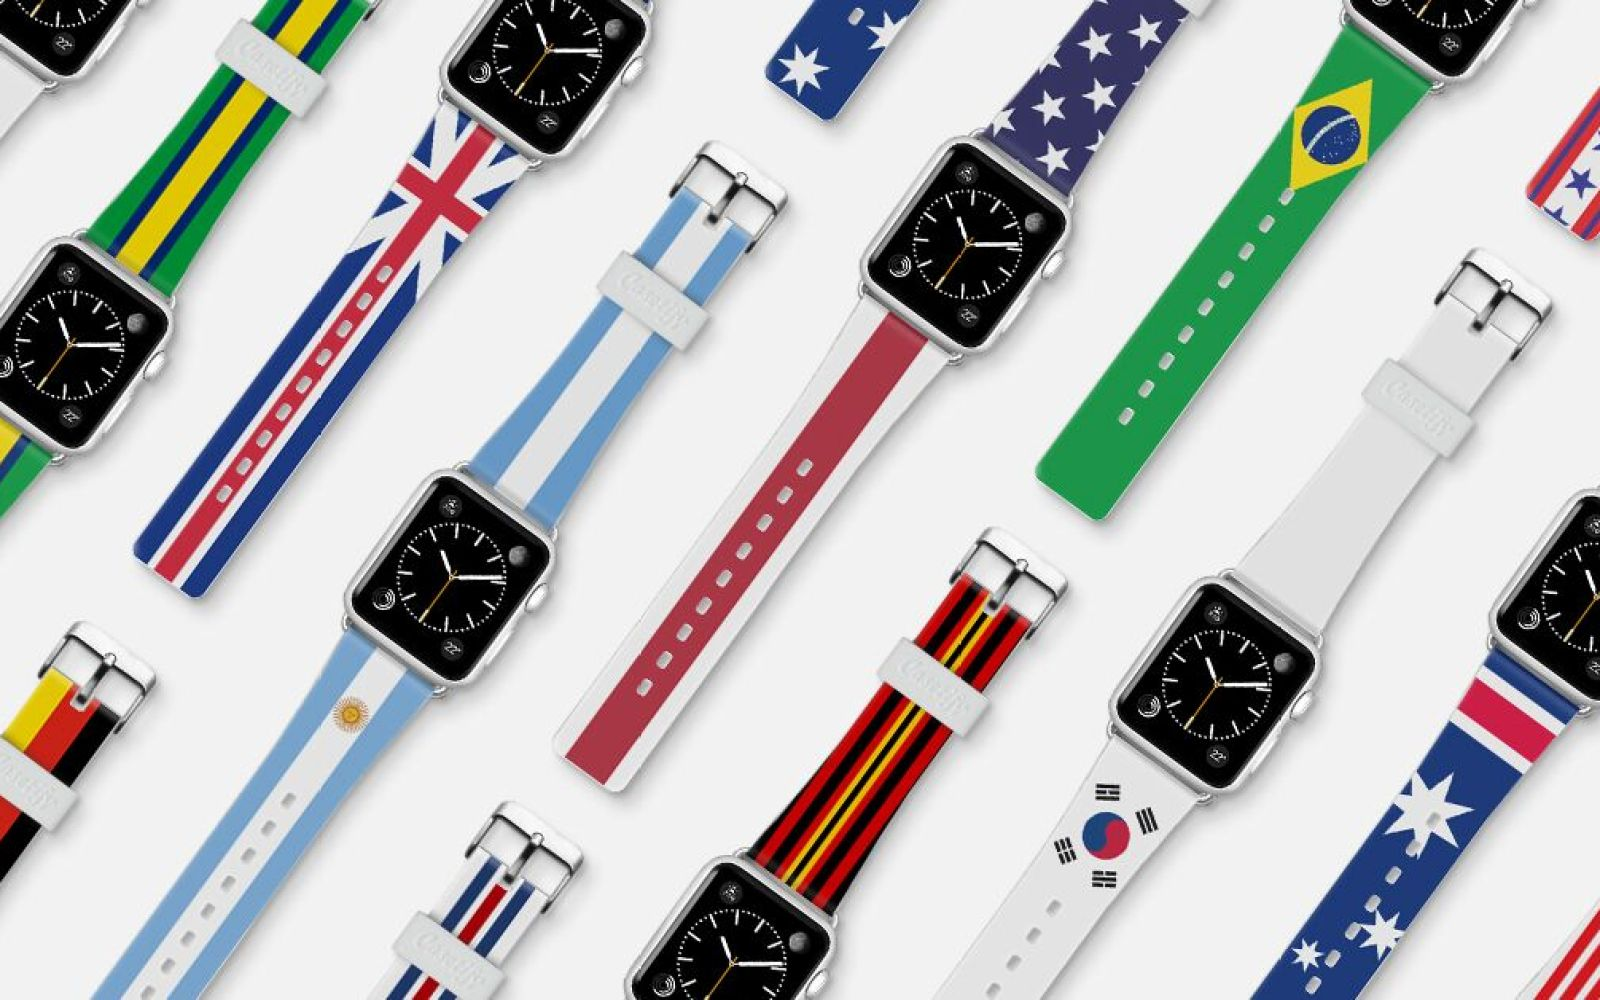 Casetify offering Olympics-inspired Apple Watch bands in various national colors